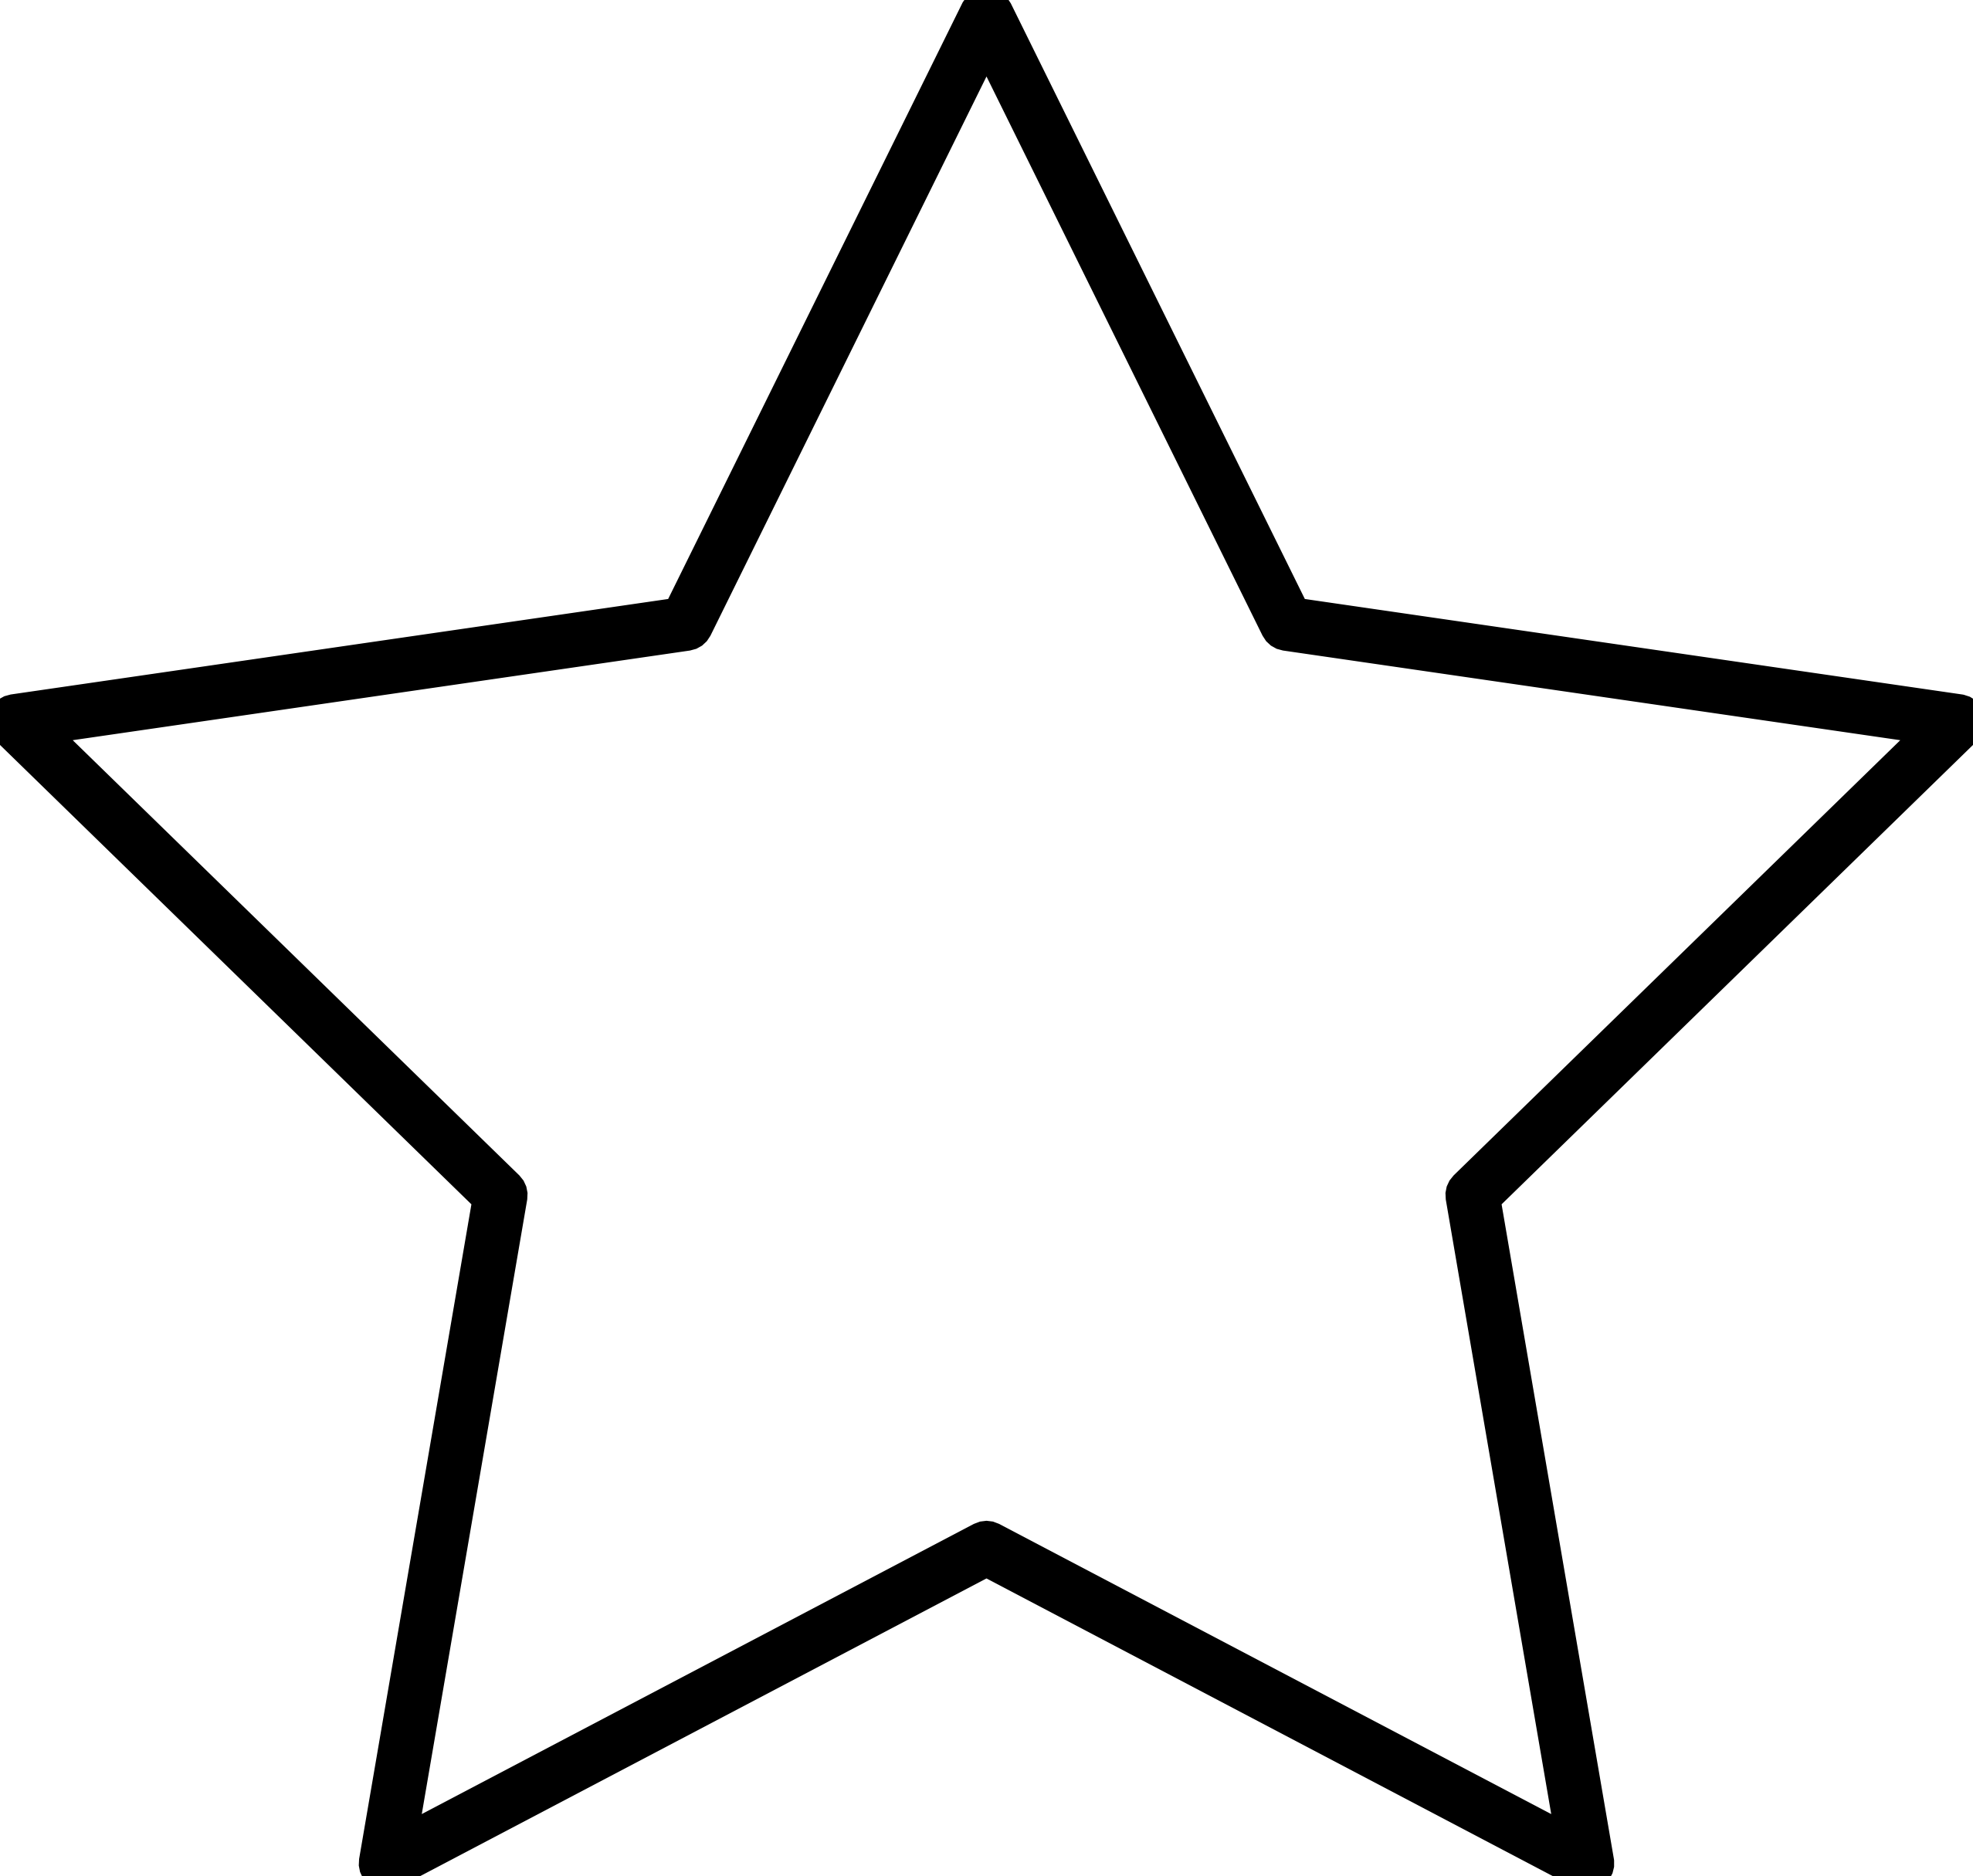 star silhouette outline clip art yellow star october 2011 rh pinterest com clip art of a star shape starfish clipart